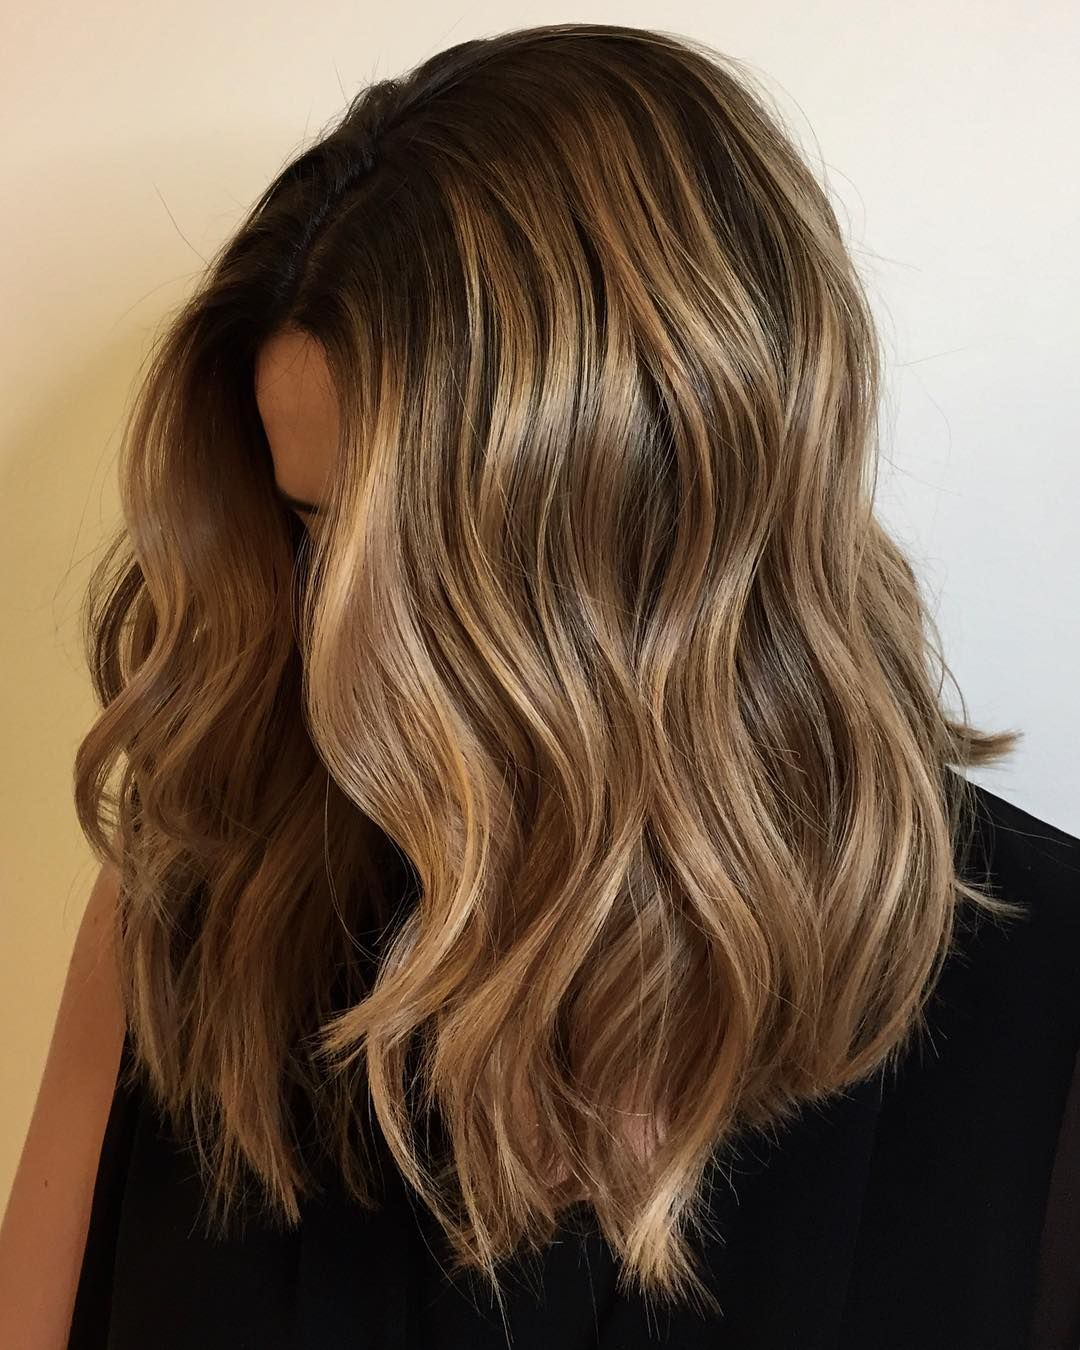 Golden Toffee Hair Is Fall S Most Delicious Hair Color Trend